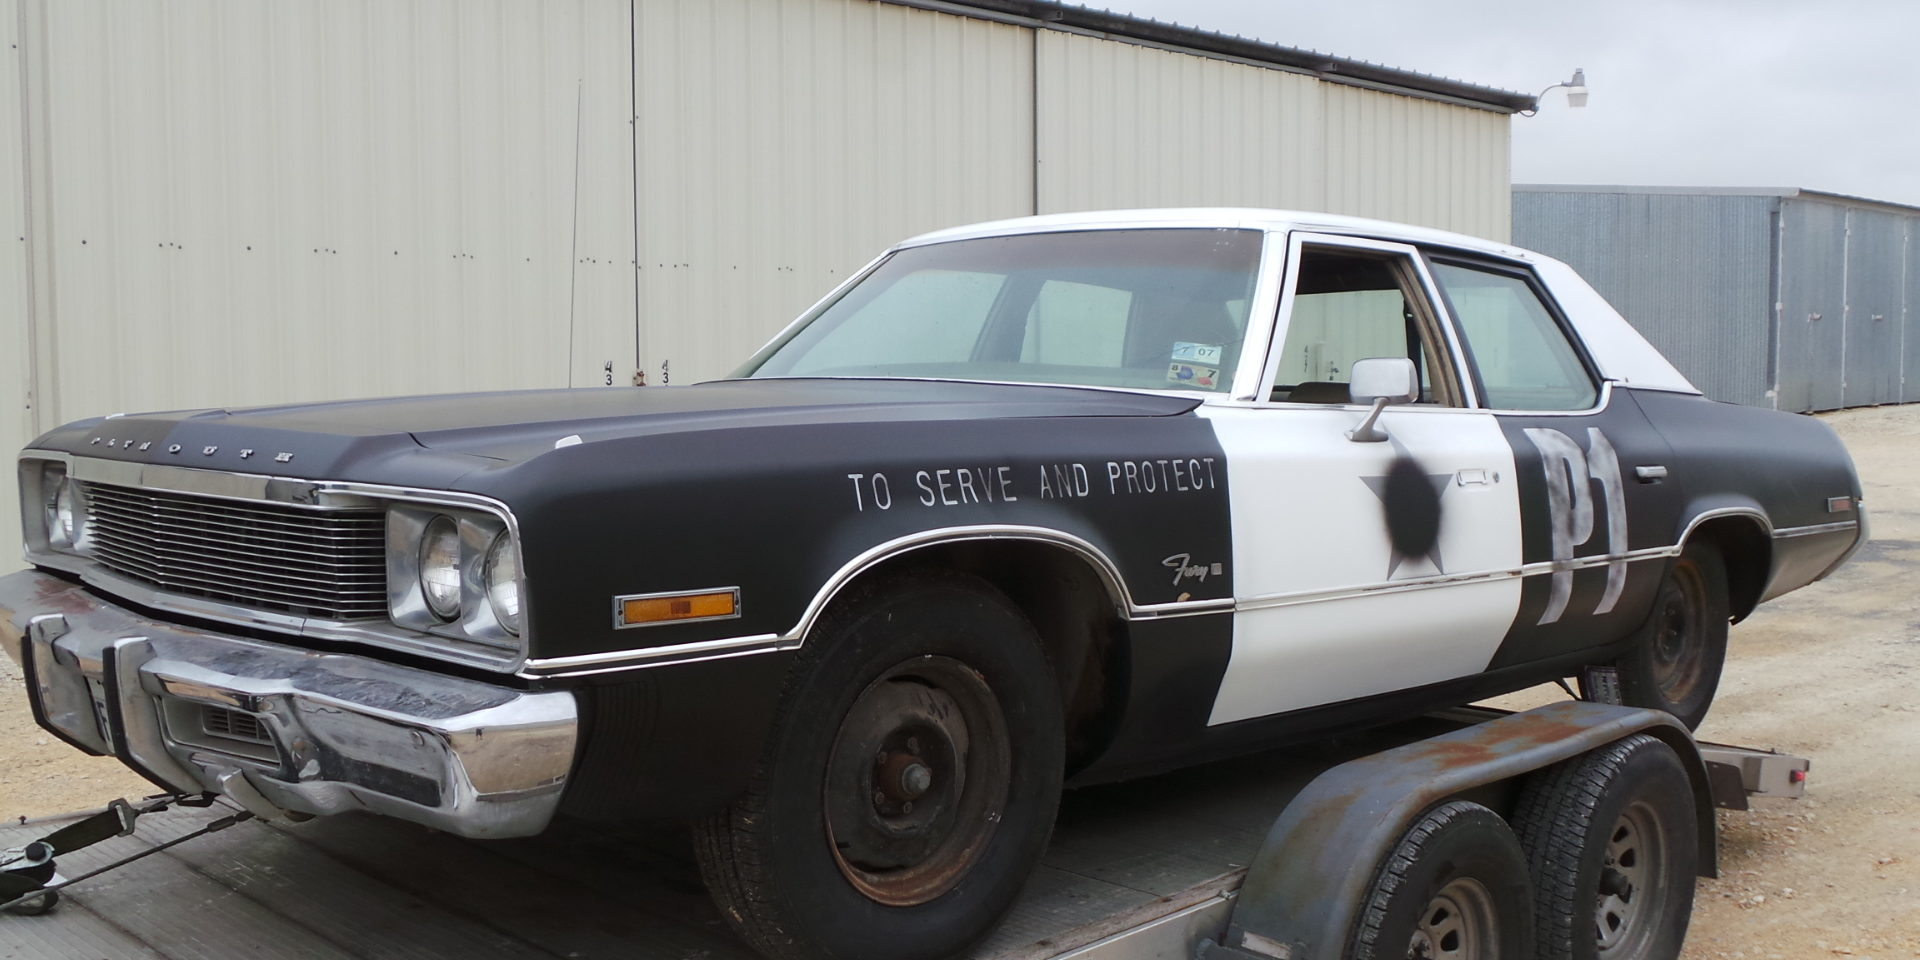 1974 BLUESMOBILE, JAKE AND ELWOOD SPECIAL  ASKING $5900 – Texas